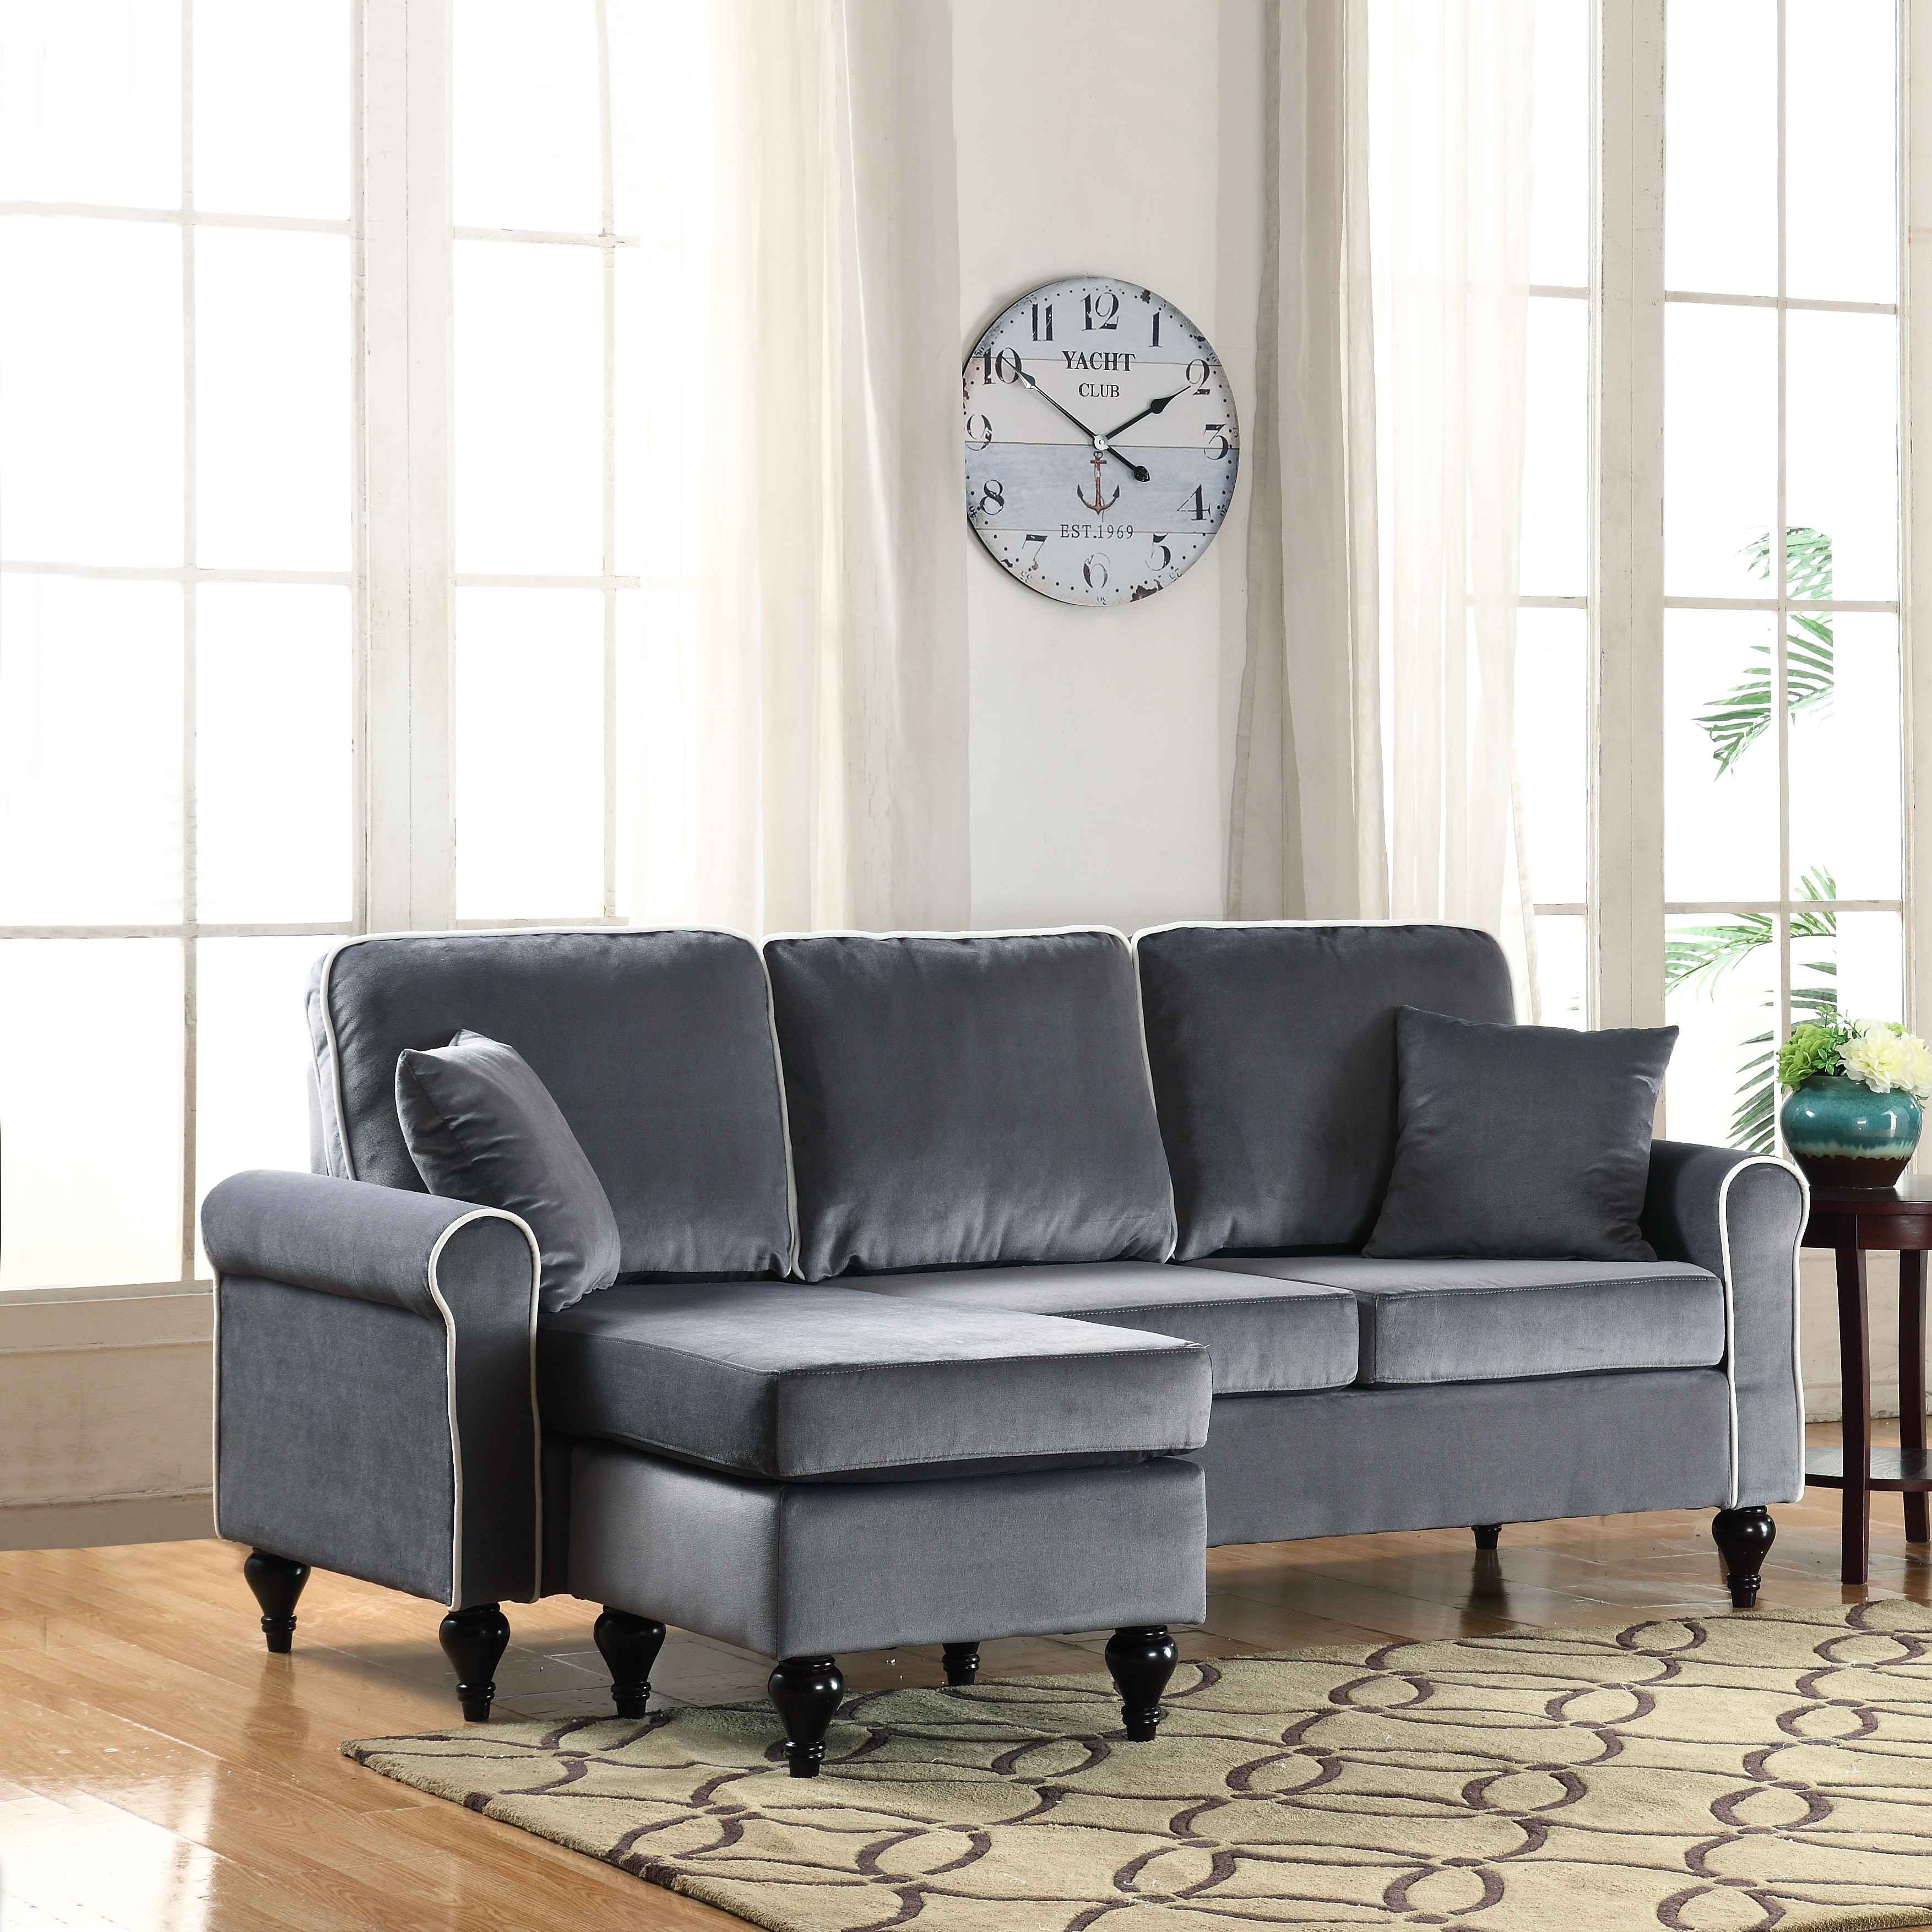 Best ideas about Mini Sectional Sofa . Save or Pin Traditional Small Space Grey Velvet Sectional Sofa with Now.